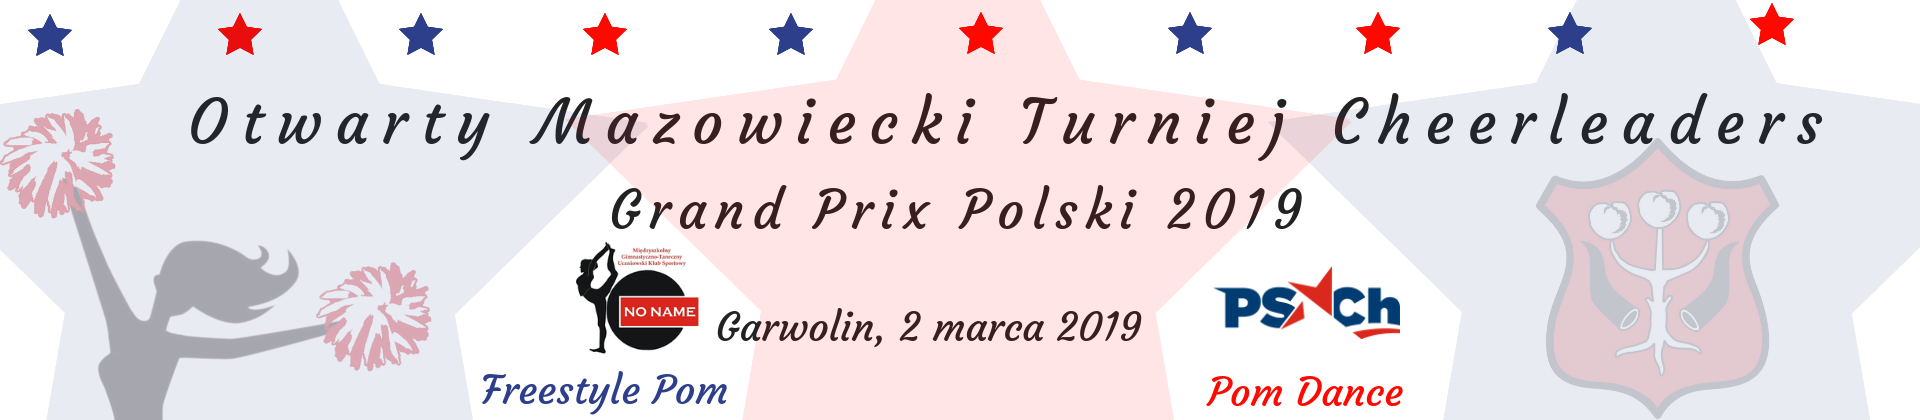 Grand Prix Polski Cheerleaders 2018 (13)